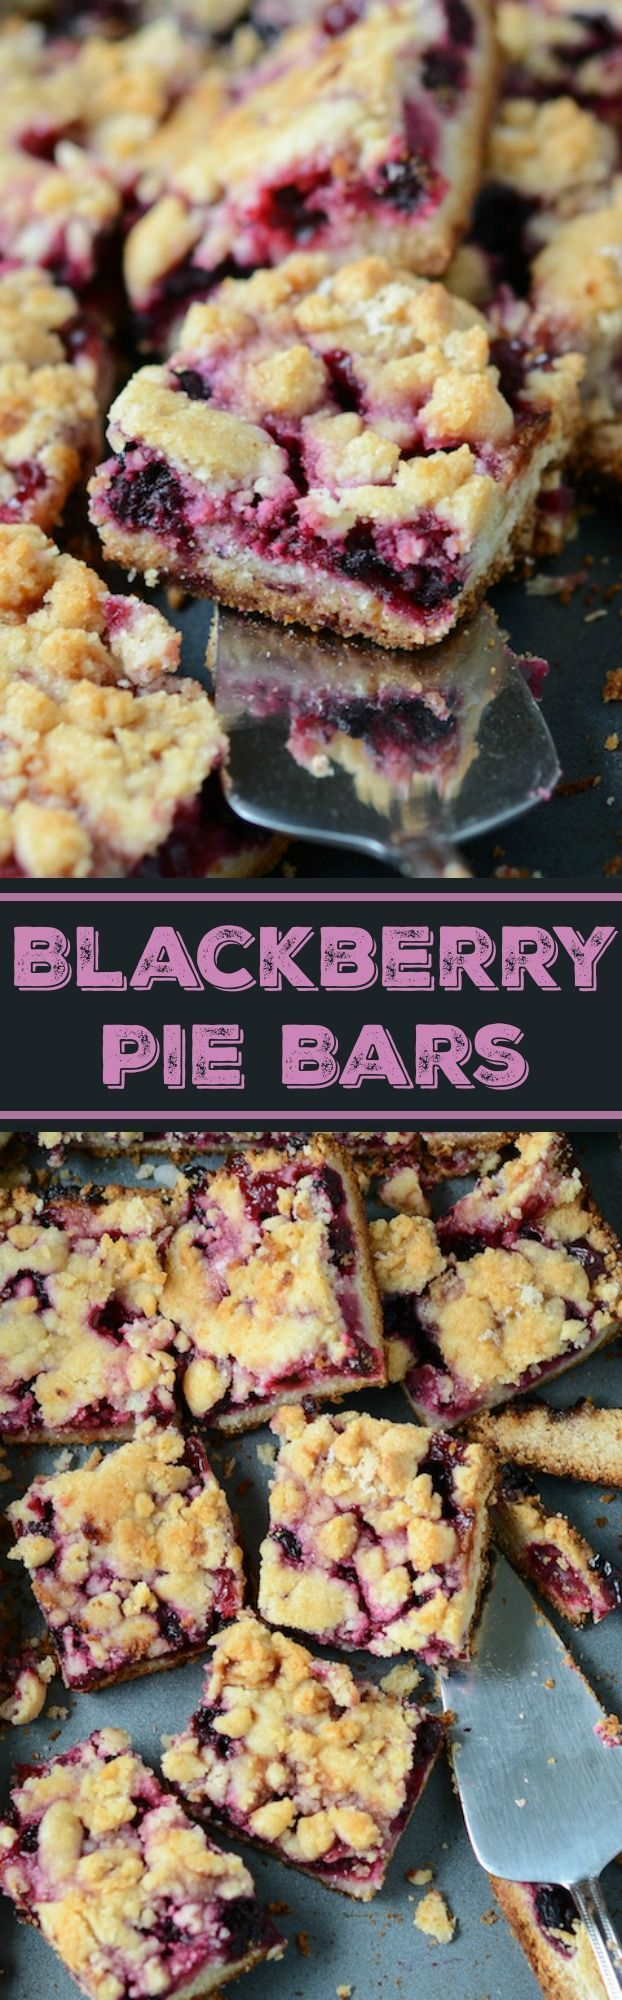 Slow Cooker: Blackberry Pie Bars